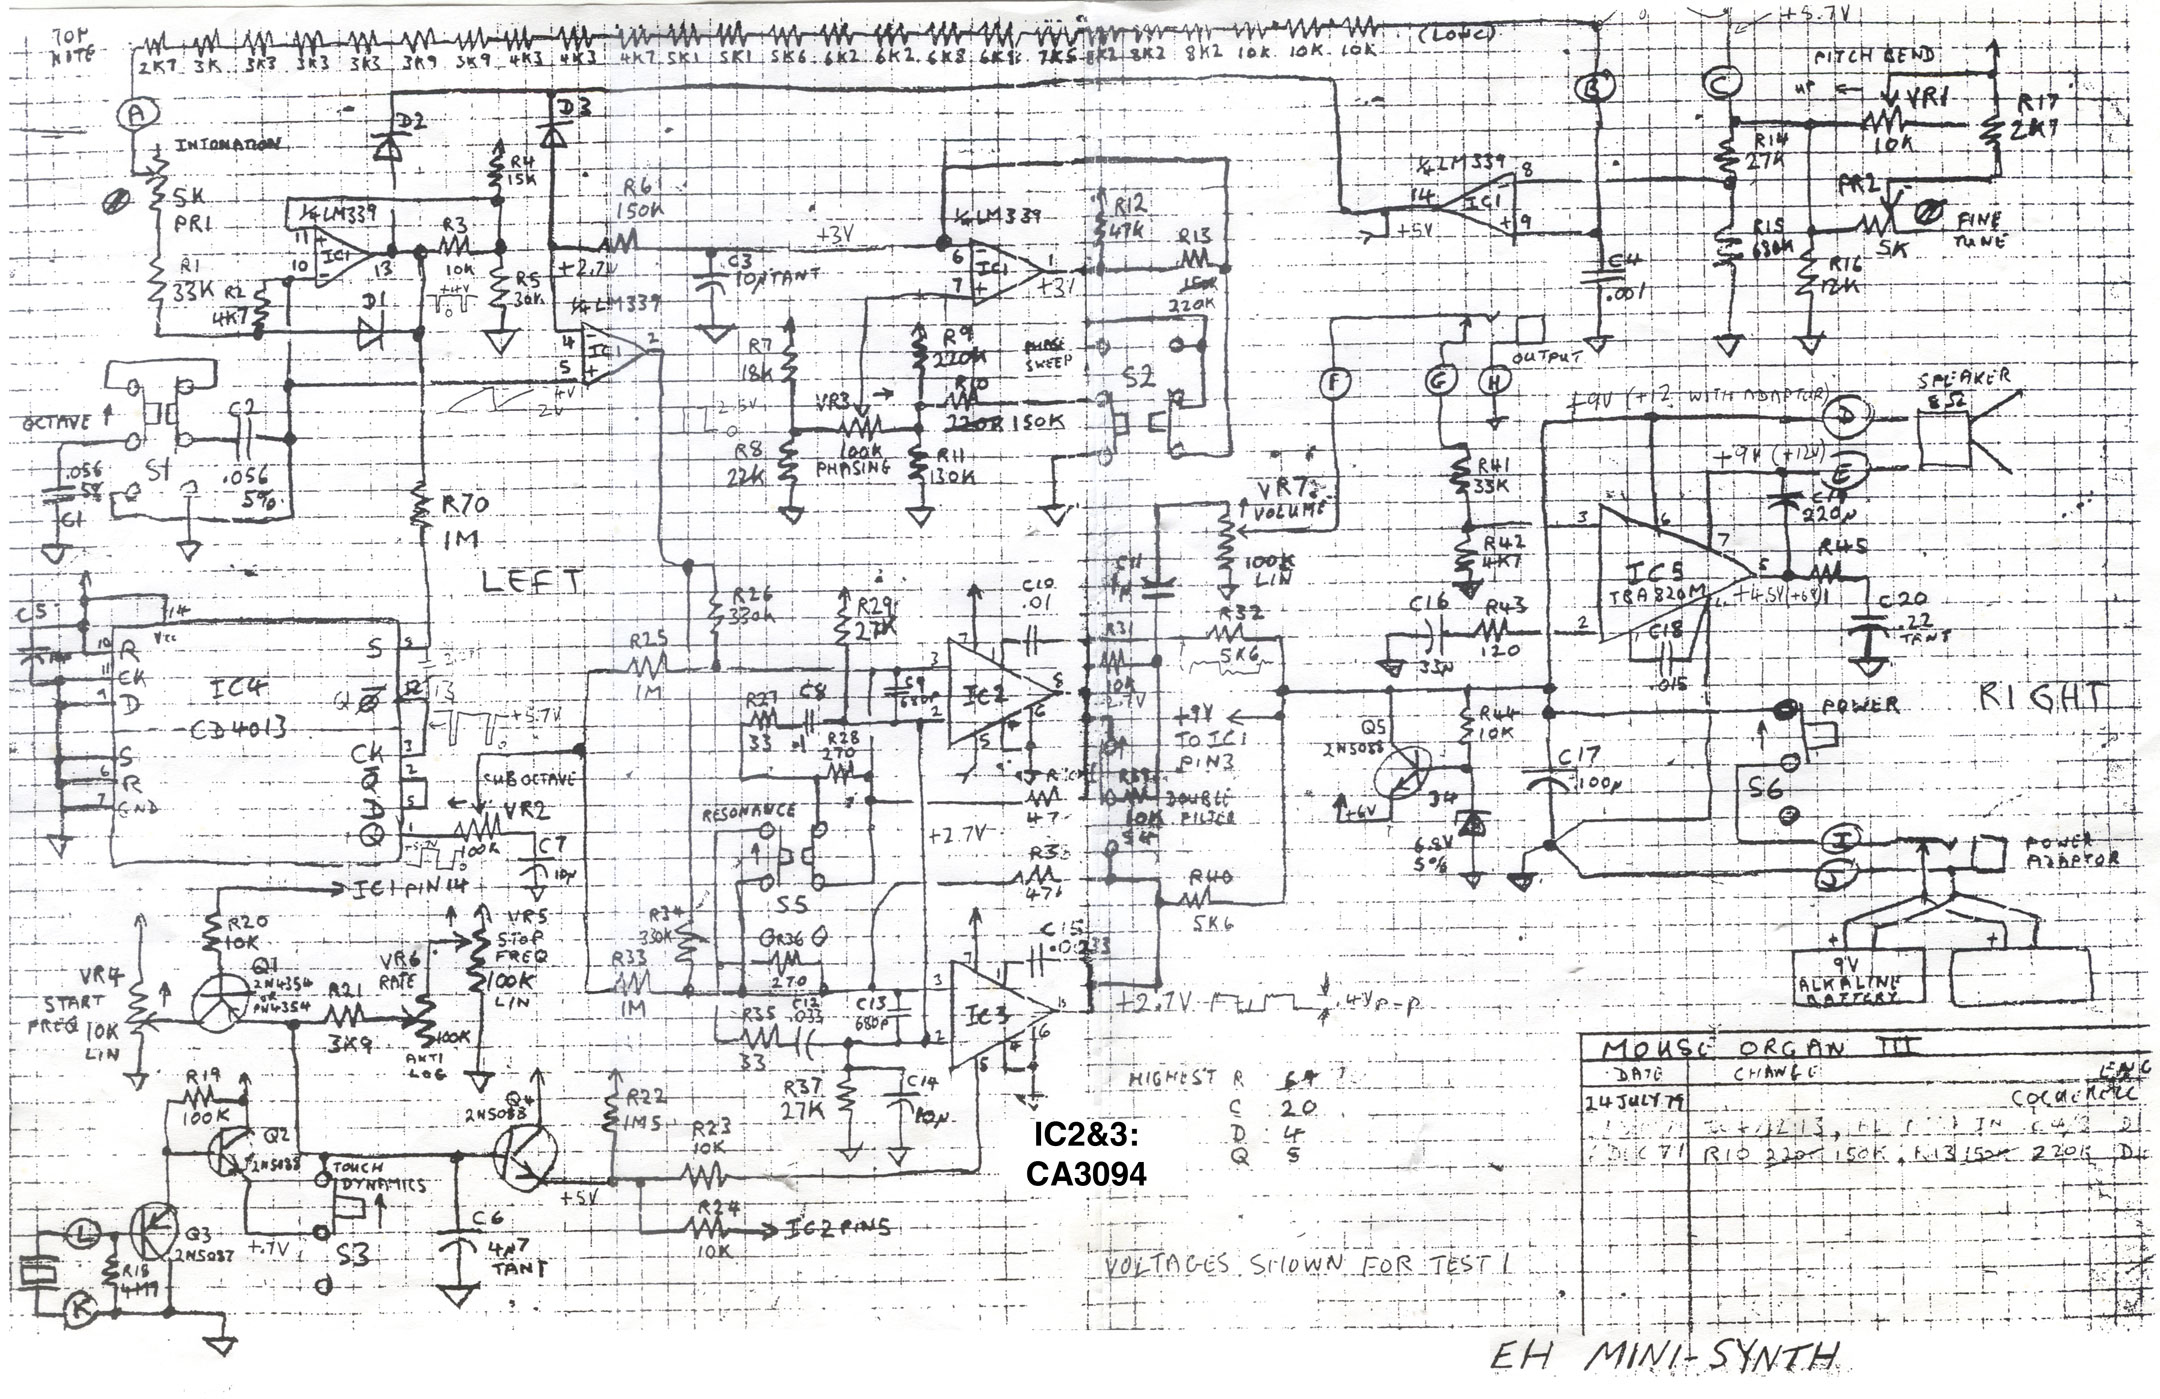 lpb 1 schematic with Electro Harmonix Replacement Parts Wiring Diagrams on Schematics in addition Electronic also Schematics furthermore 69580 moreover My13YXktc29sZW5vaWQtdmFsdmUtc2NoZW1hdGlj.